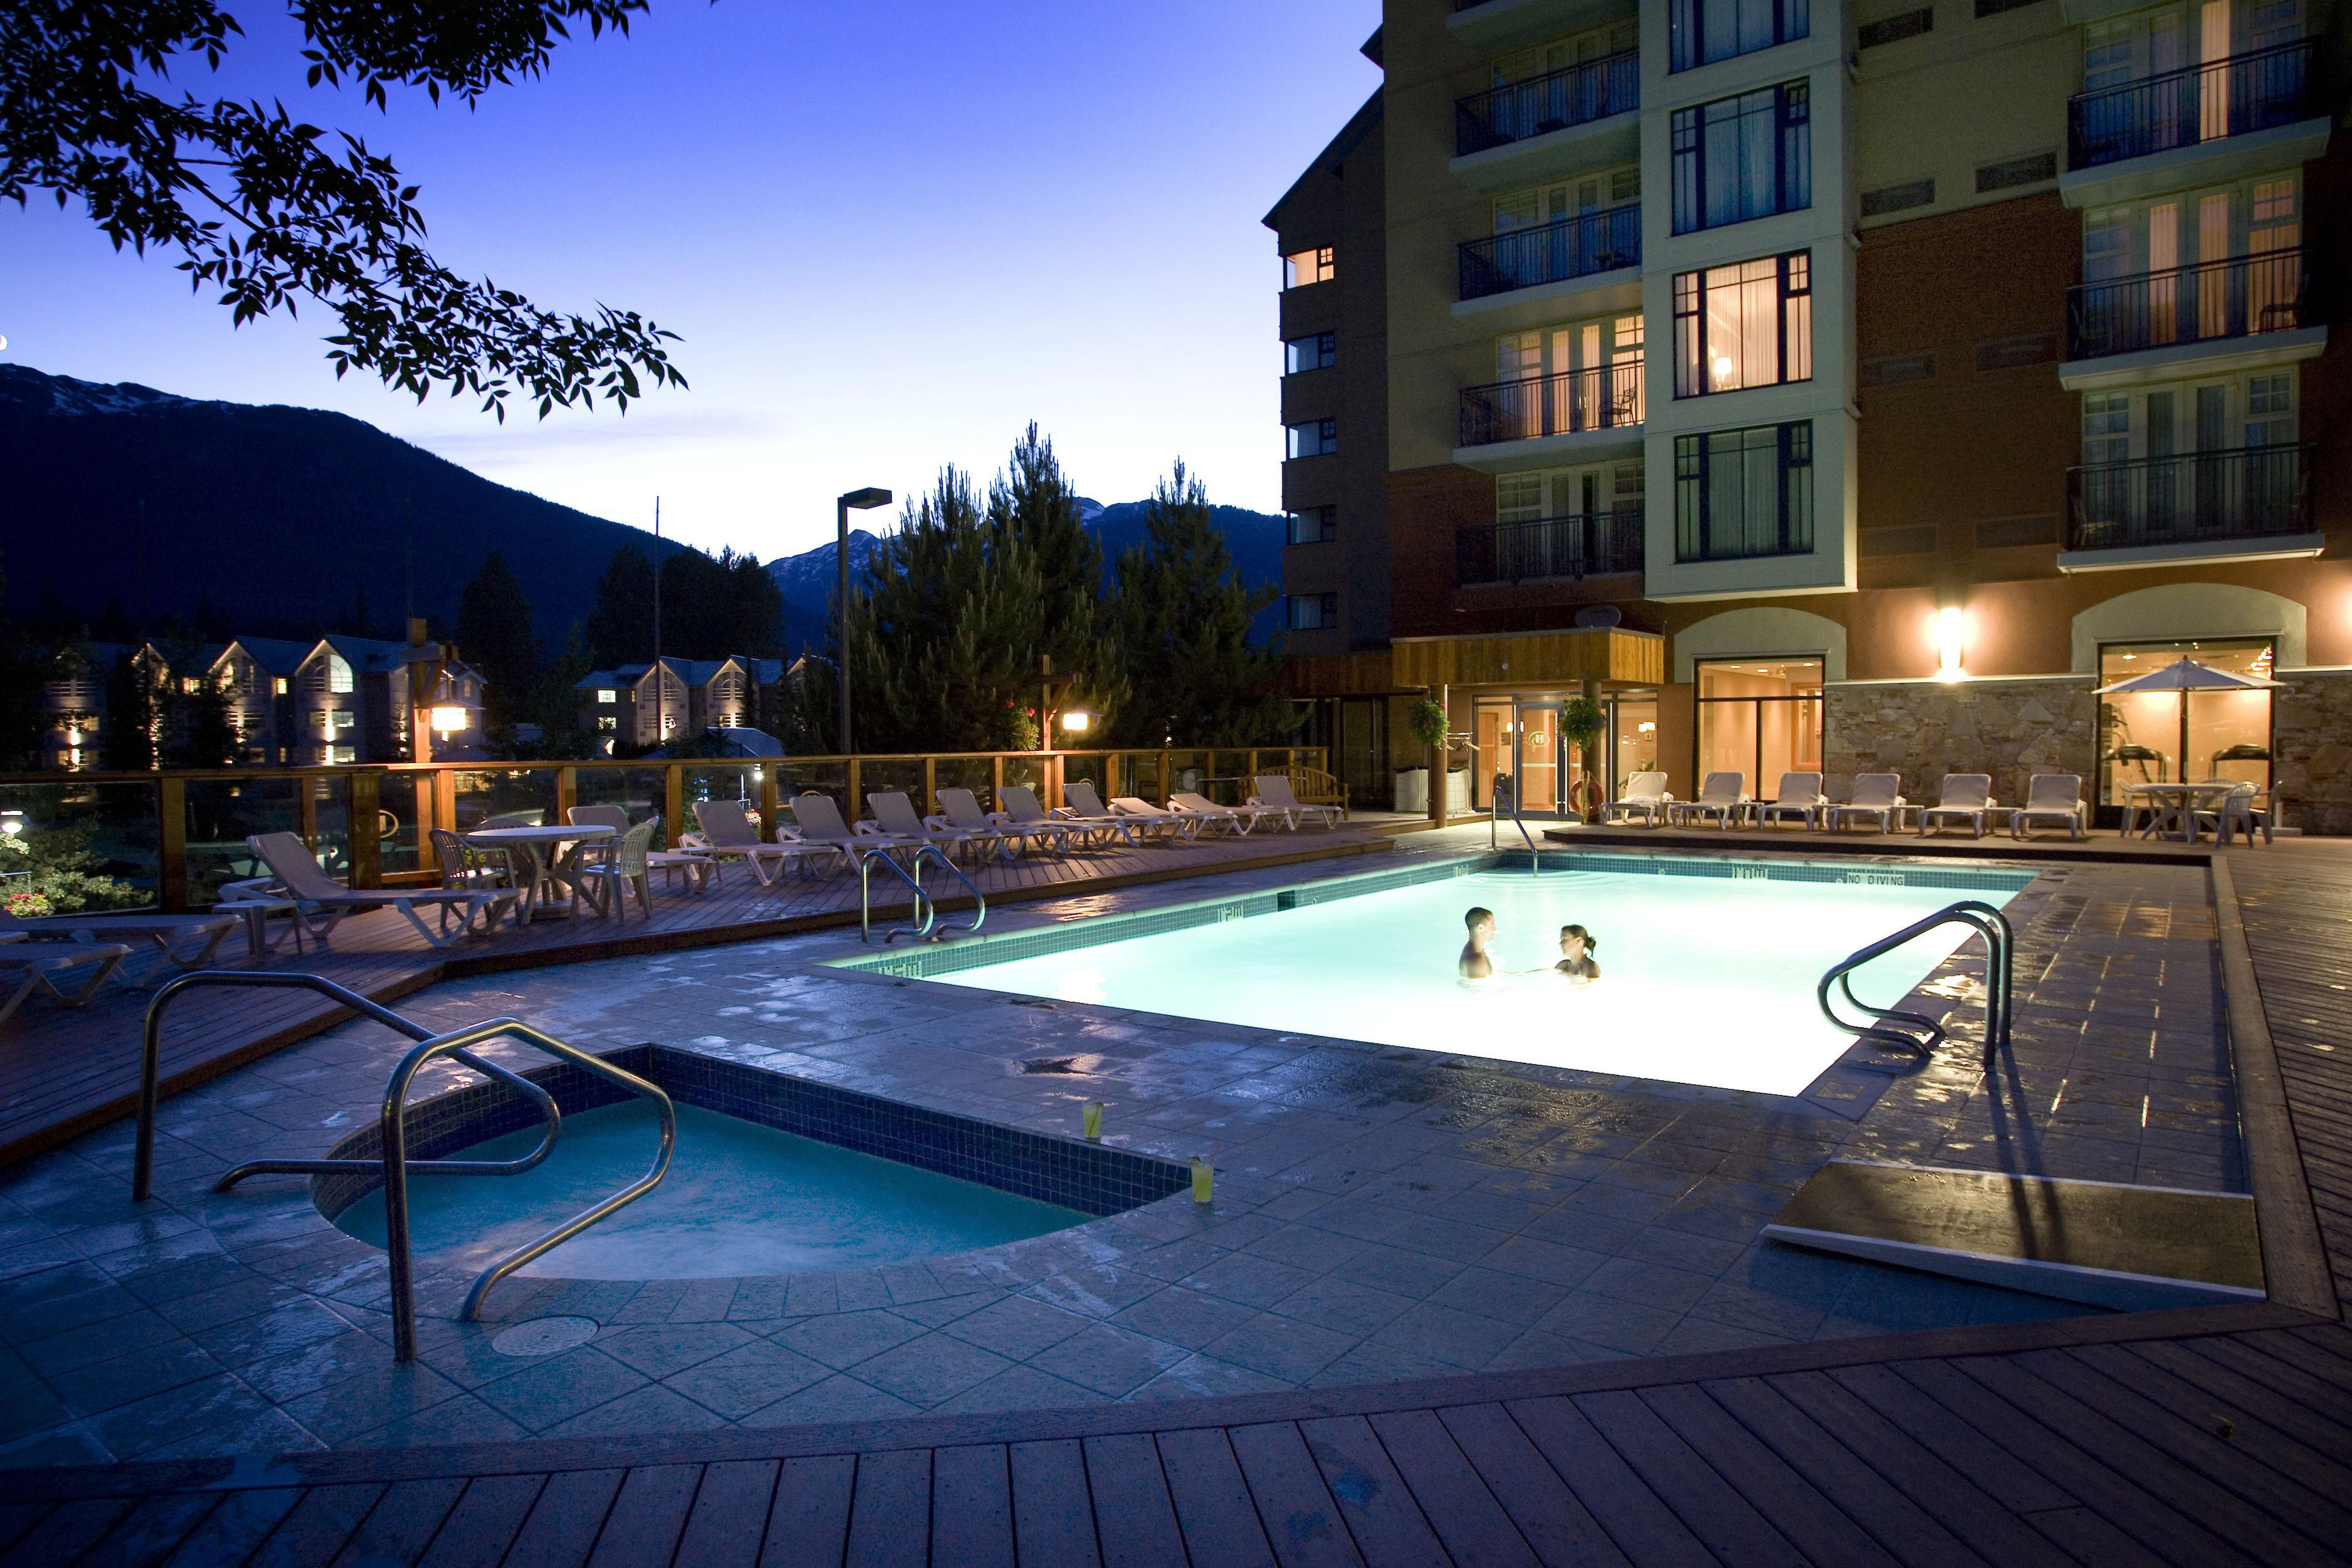 Courtesy of Hilton Whistler Resort and Spa / Expedia